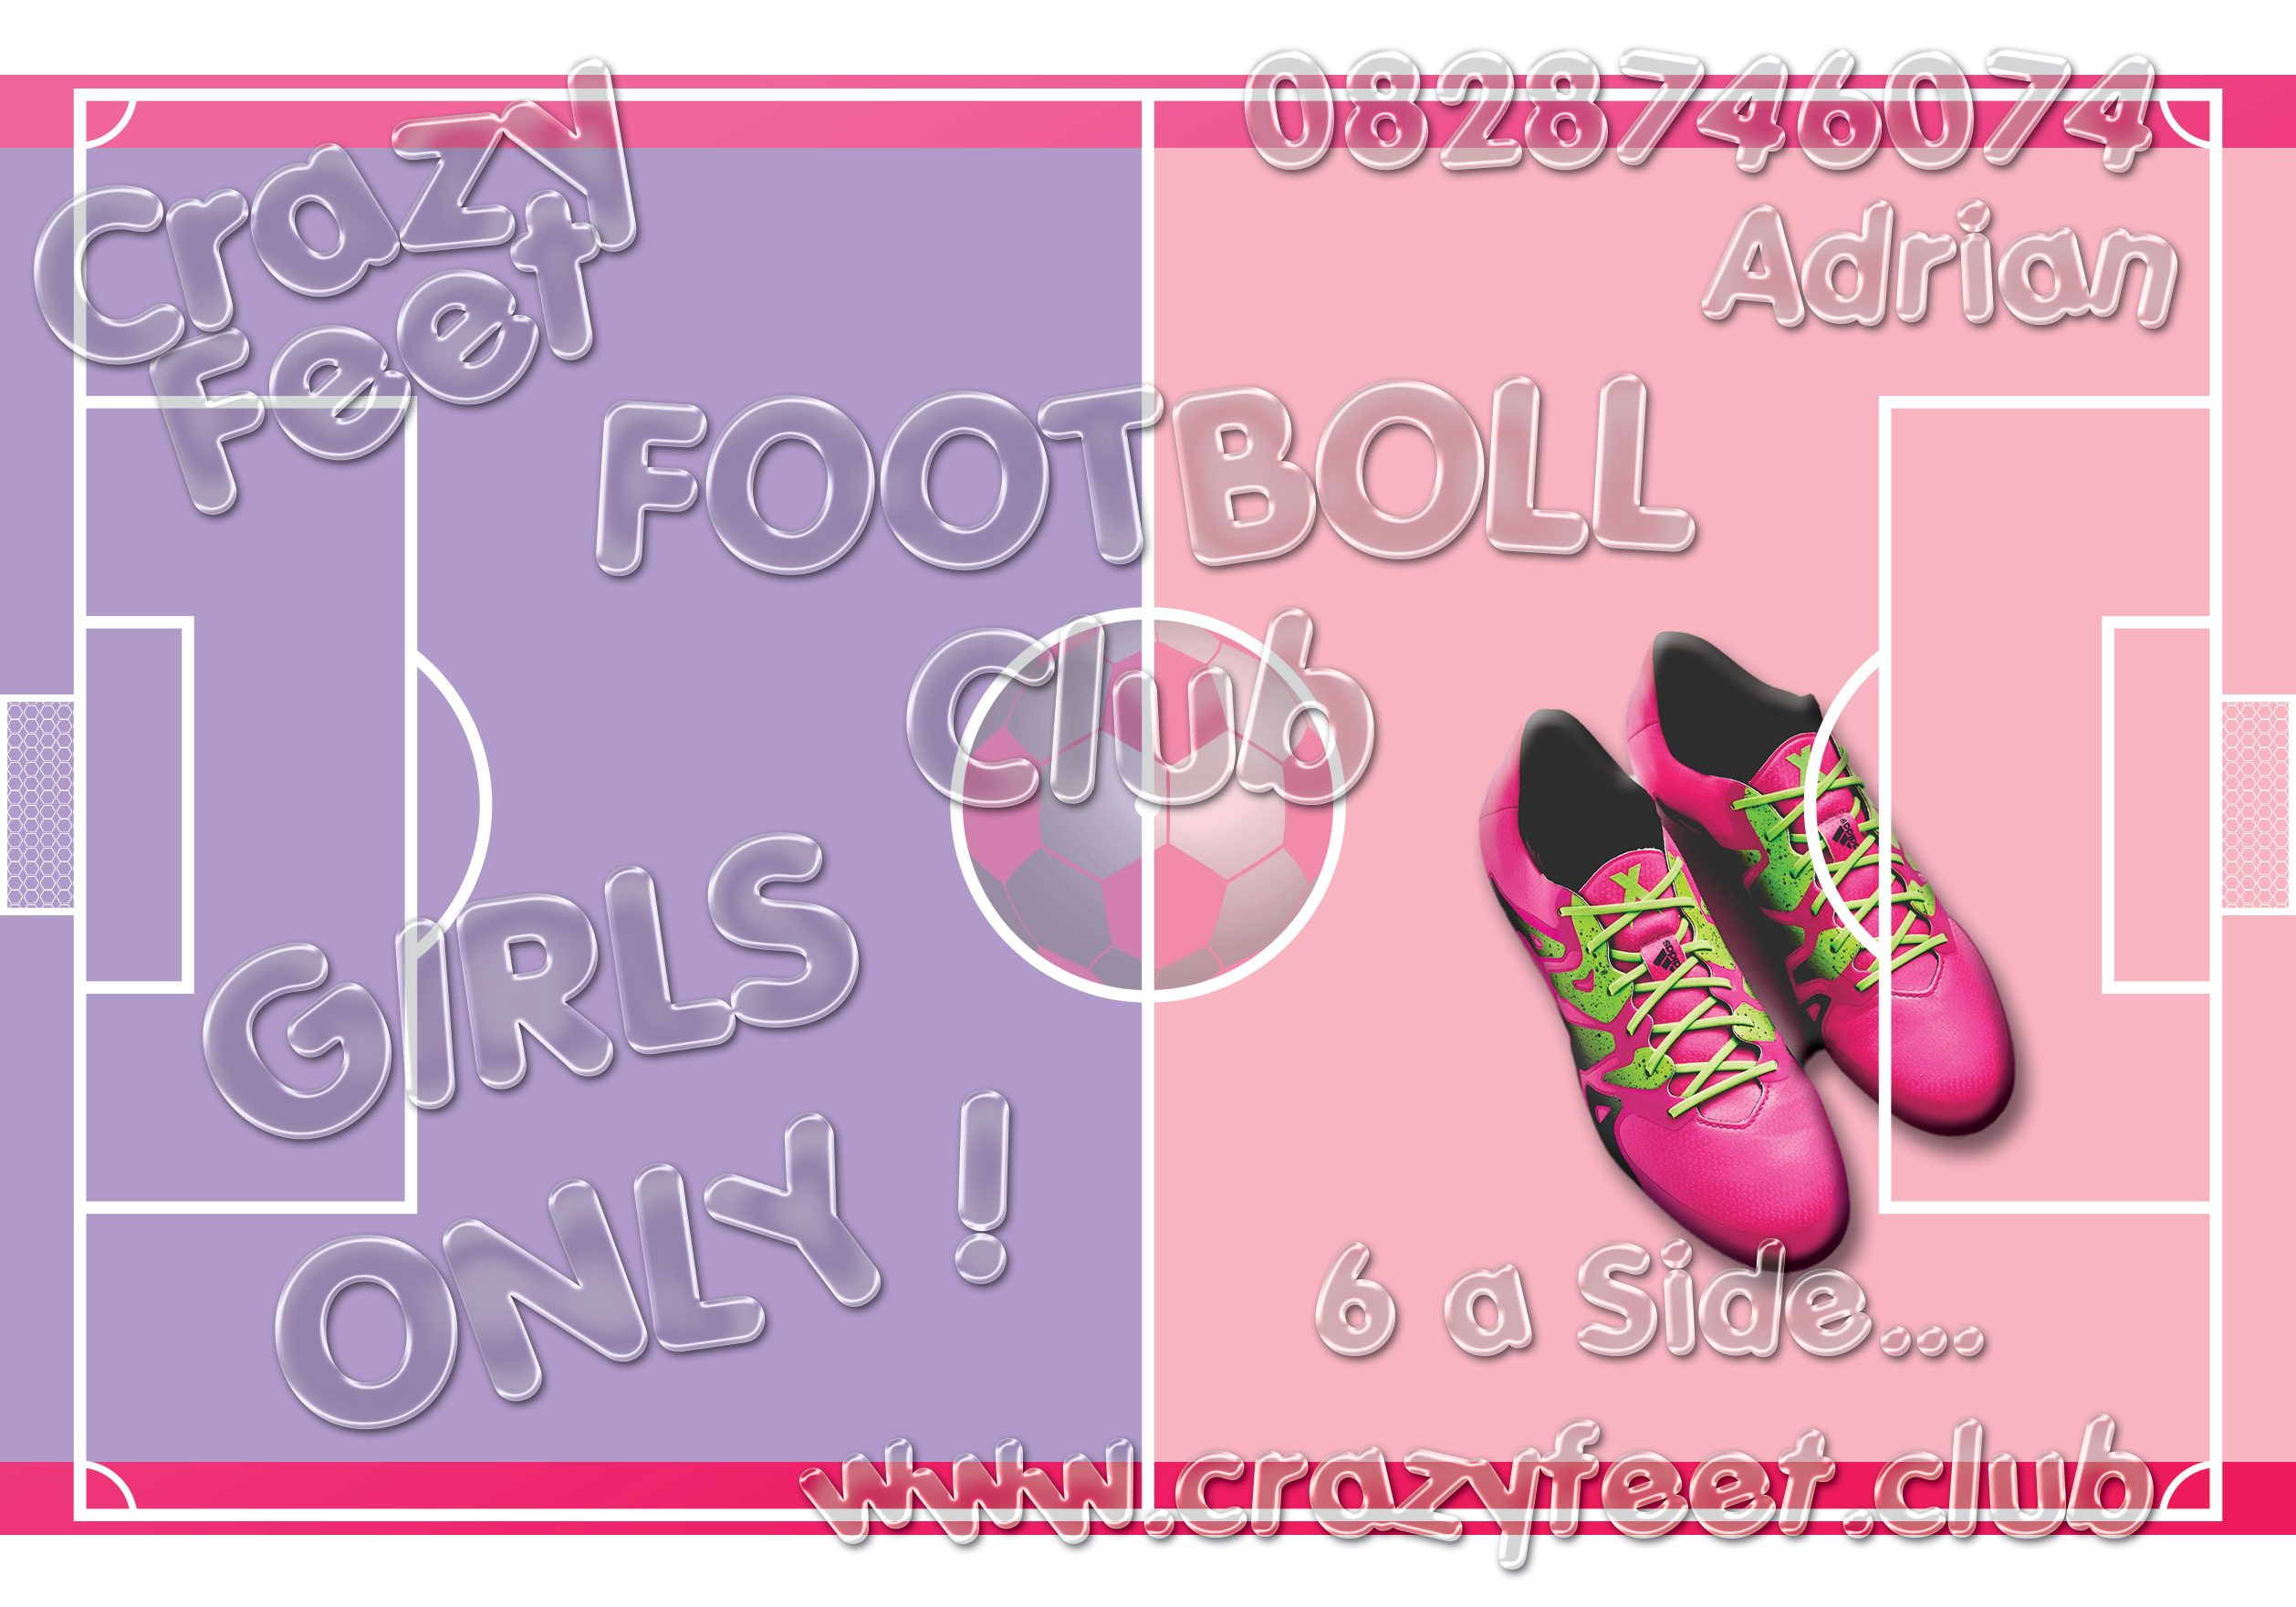 Crazy-Feet-Football-Girls-Flyer-Web-Page